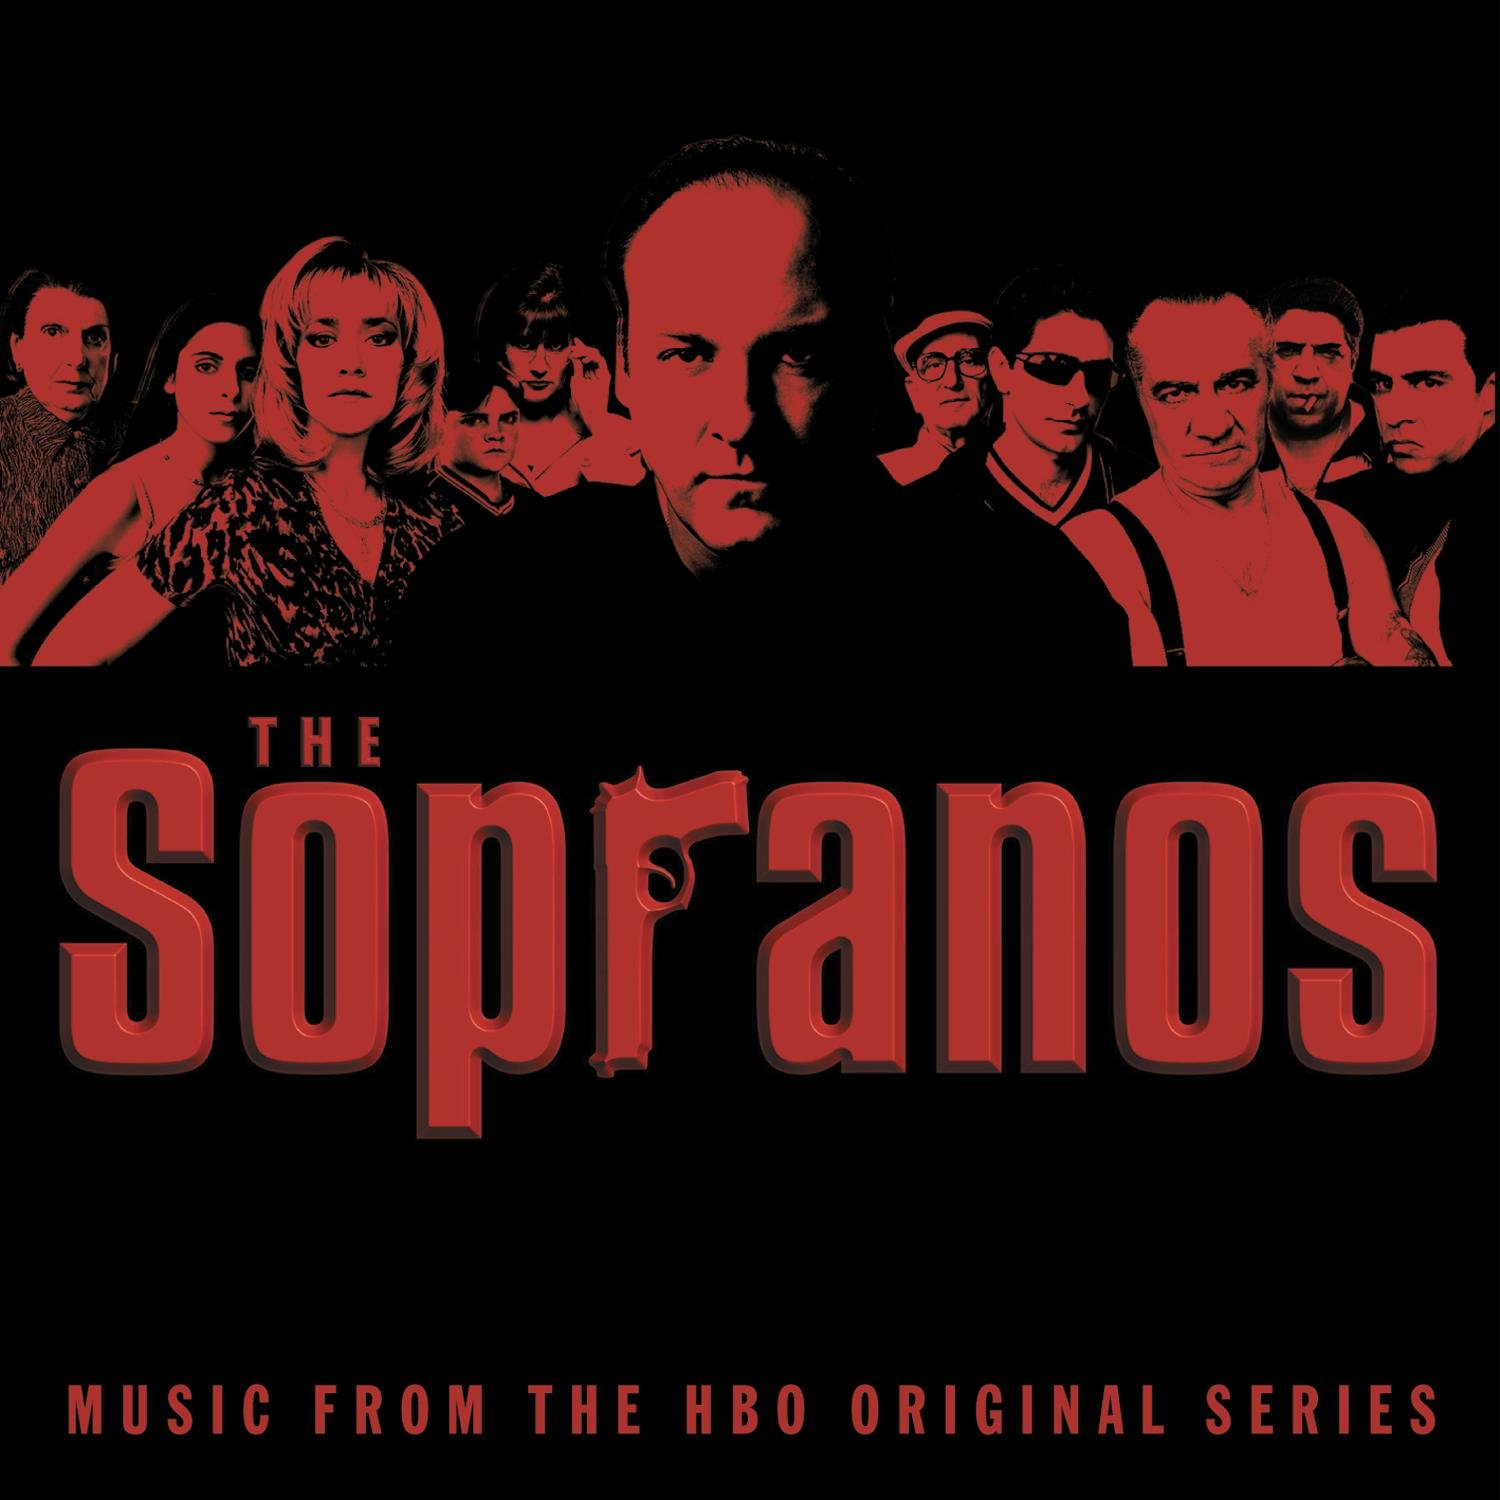 the sopranos s06e02 online dating